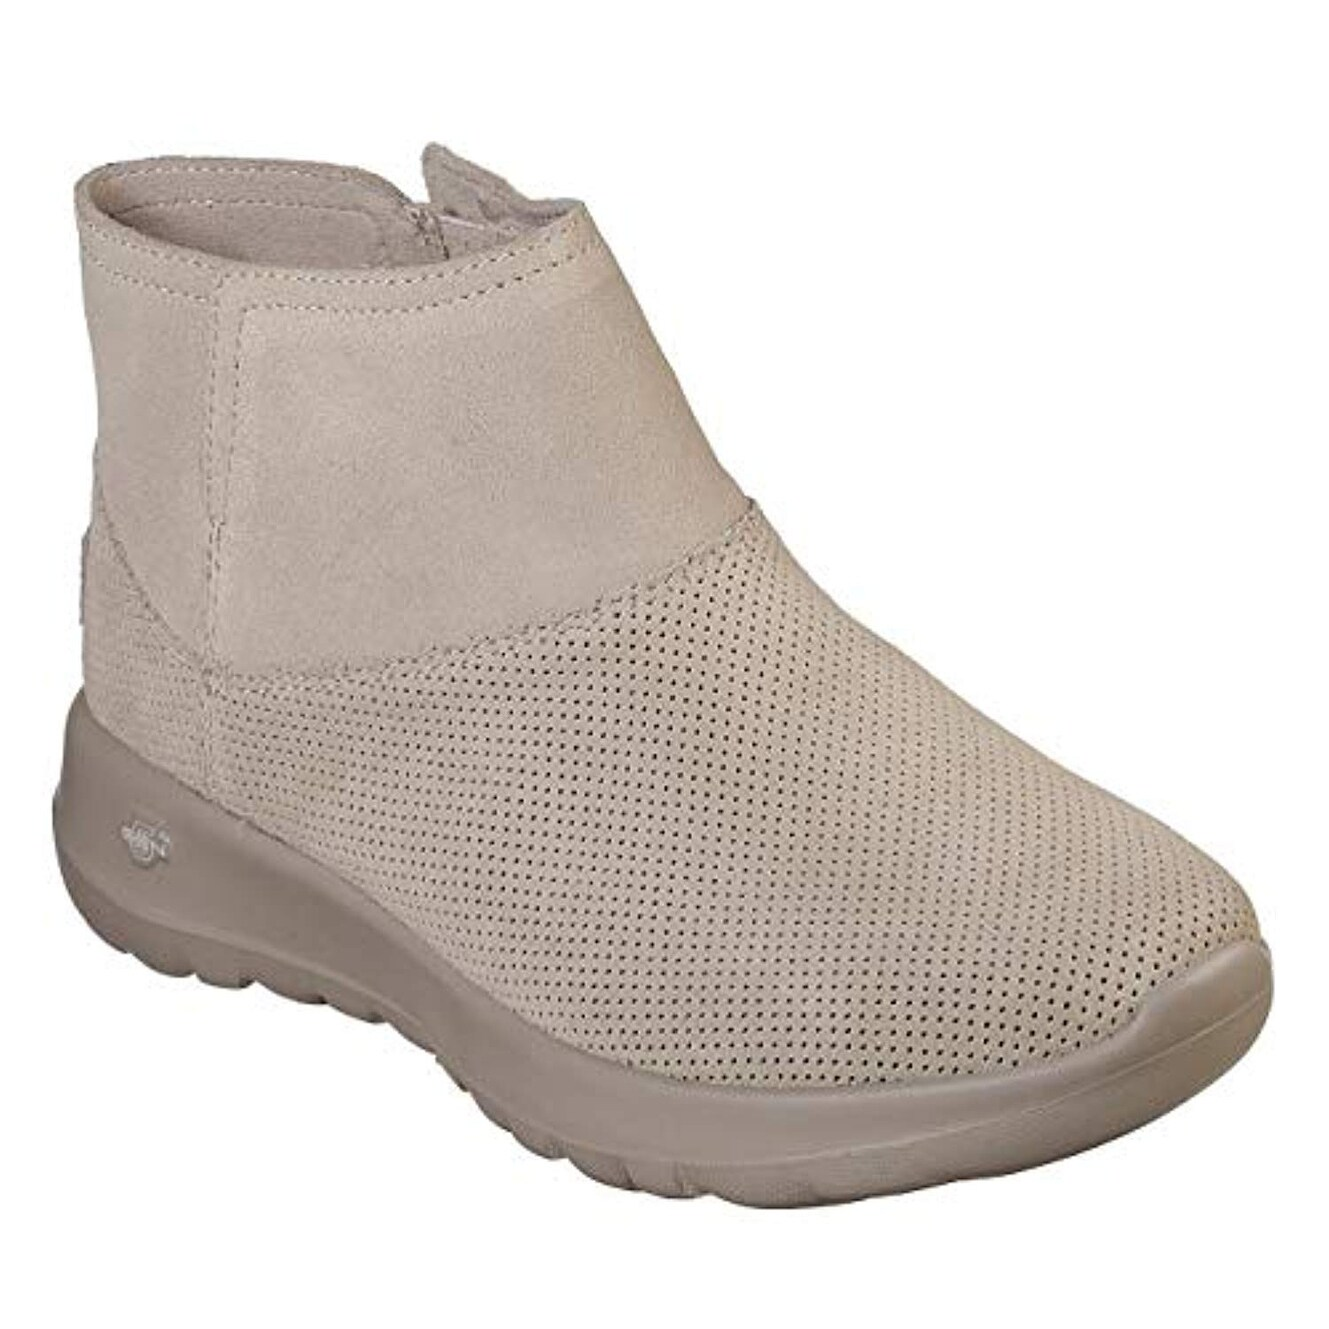 1d76121e9 Shop Skechers On The Go Joy Amber Womens Ankle Boots Taupe 11 - Free  Shipping Today - Overstock - 25977196